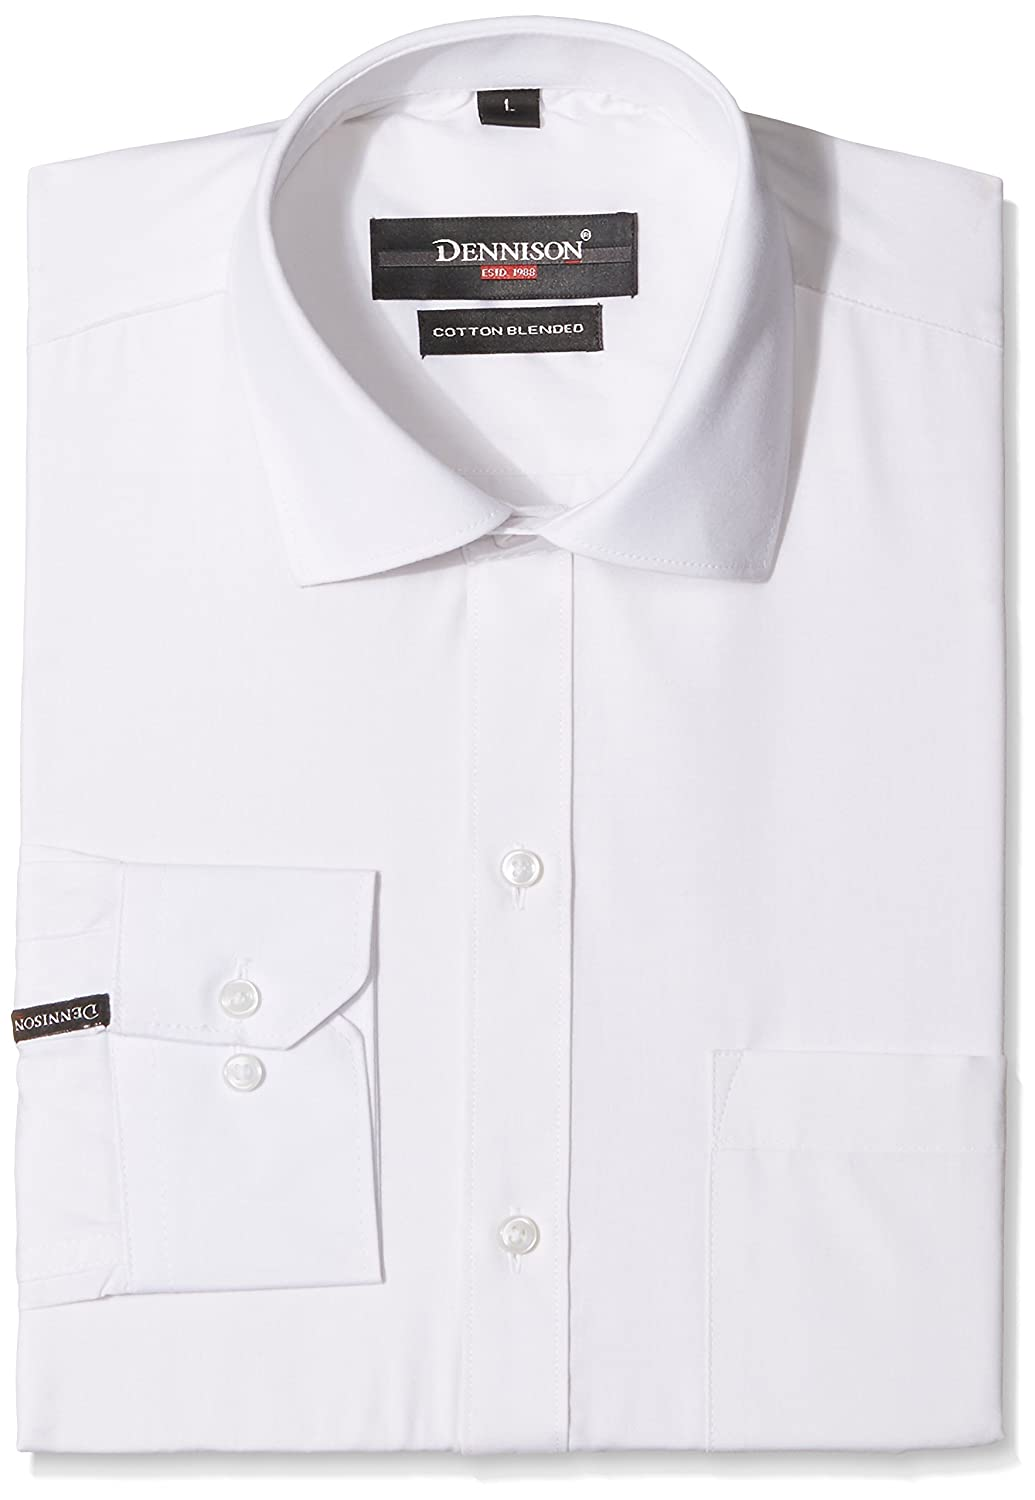 Dennison Men's Formal Shirt low price